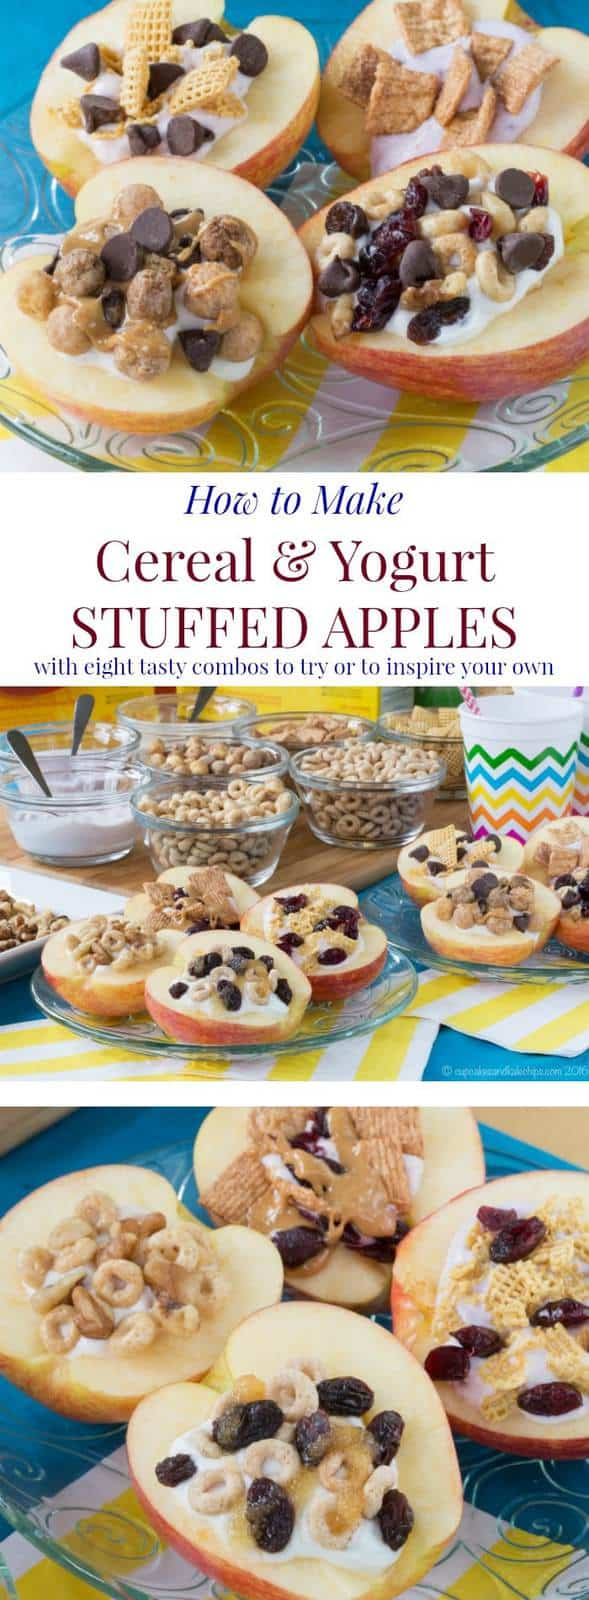 How to Make Cereal and Yogurt Stuffed Apples for a fun and nutritious after-school snack. Try these eight tasty combos or come up with your favorite. #ad | cupcakesandkalechips.com